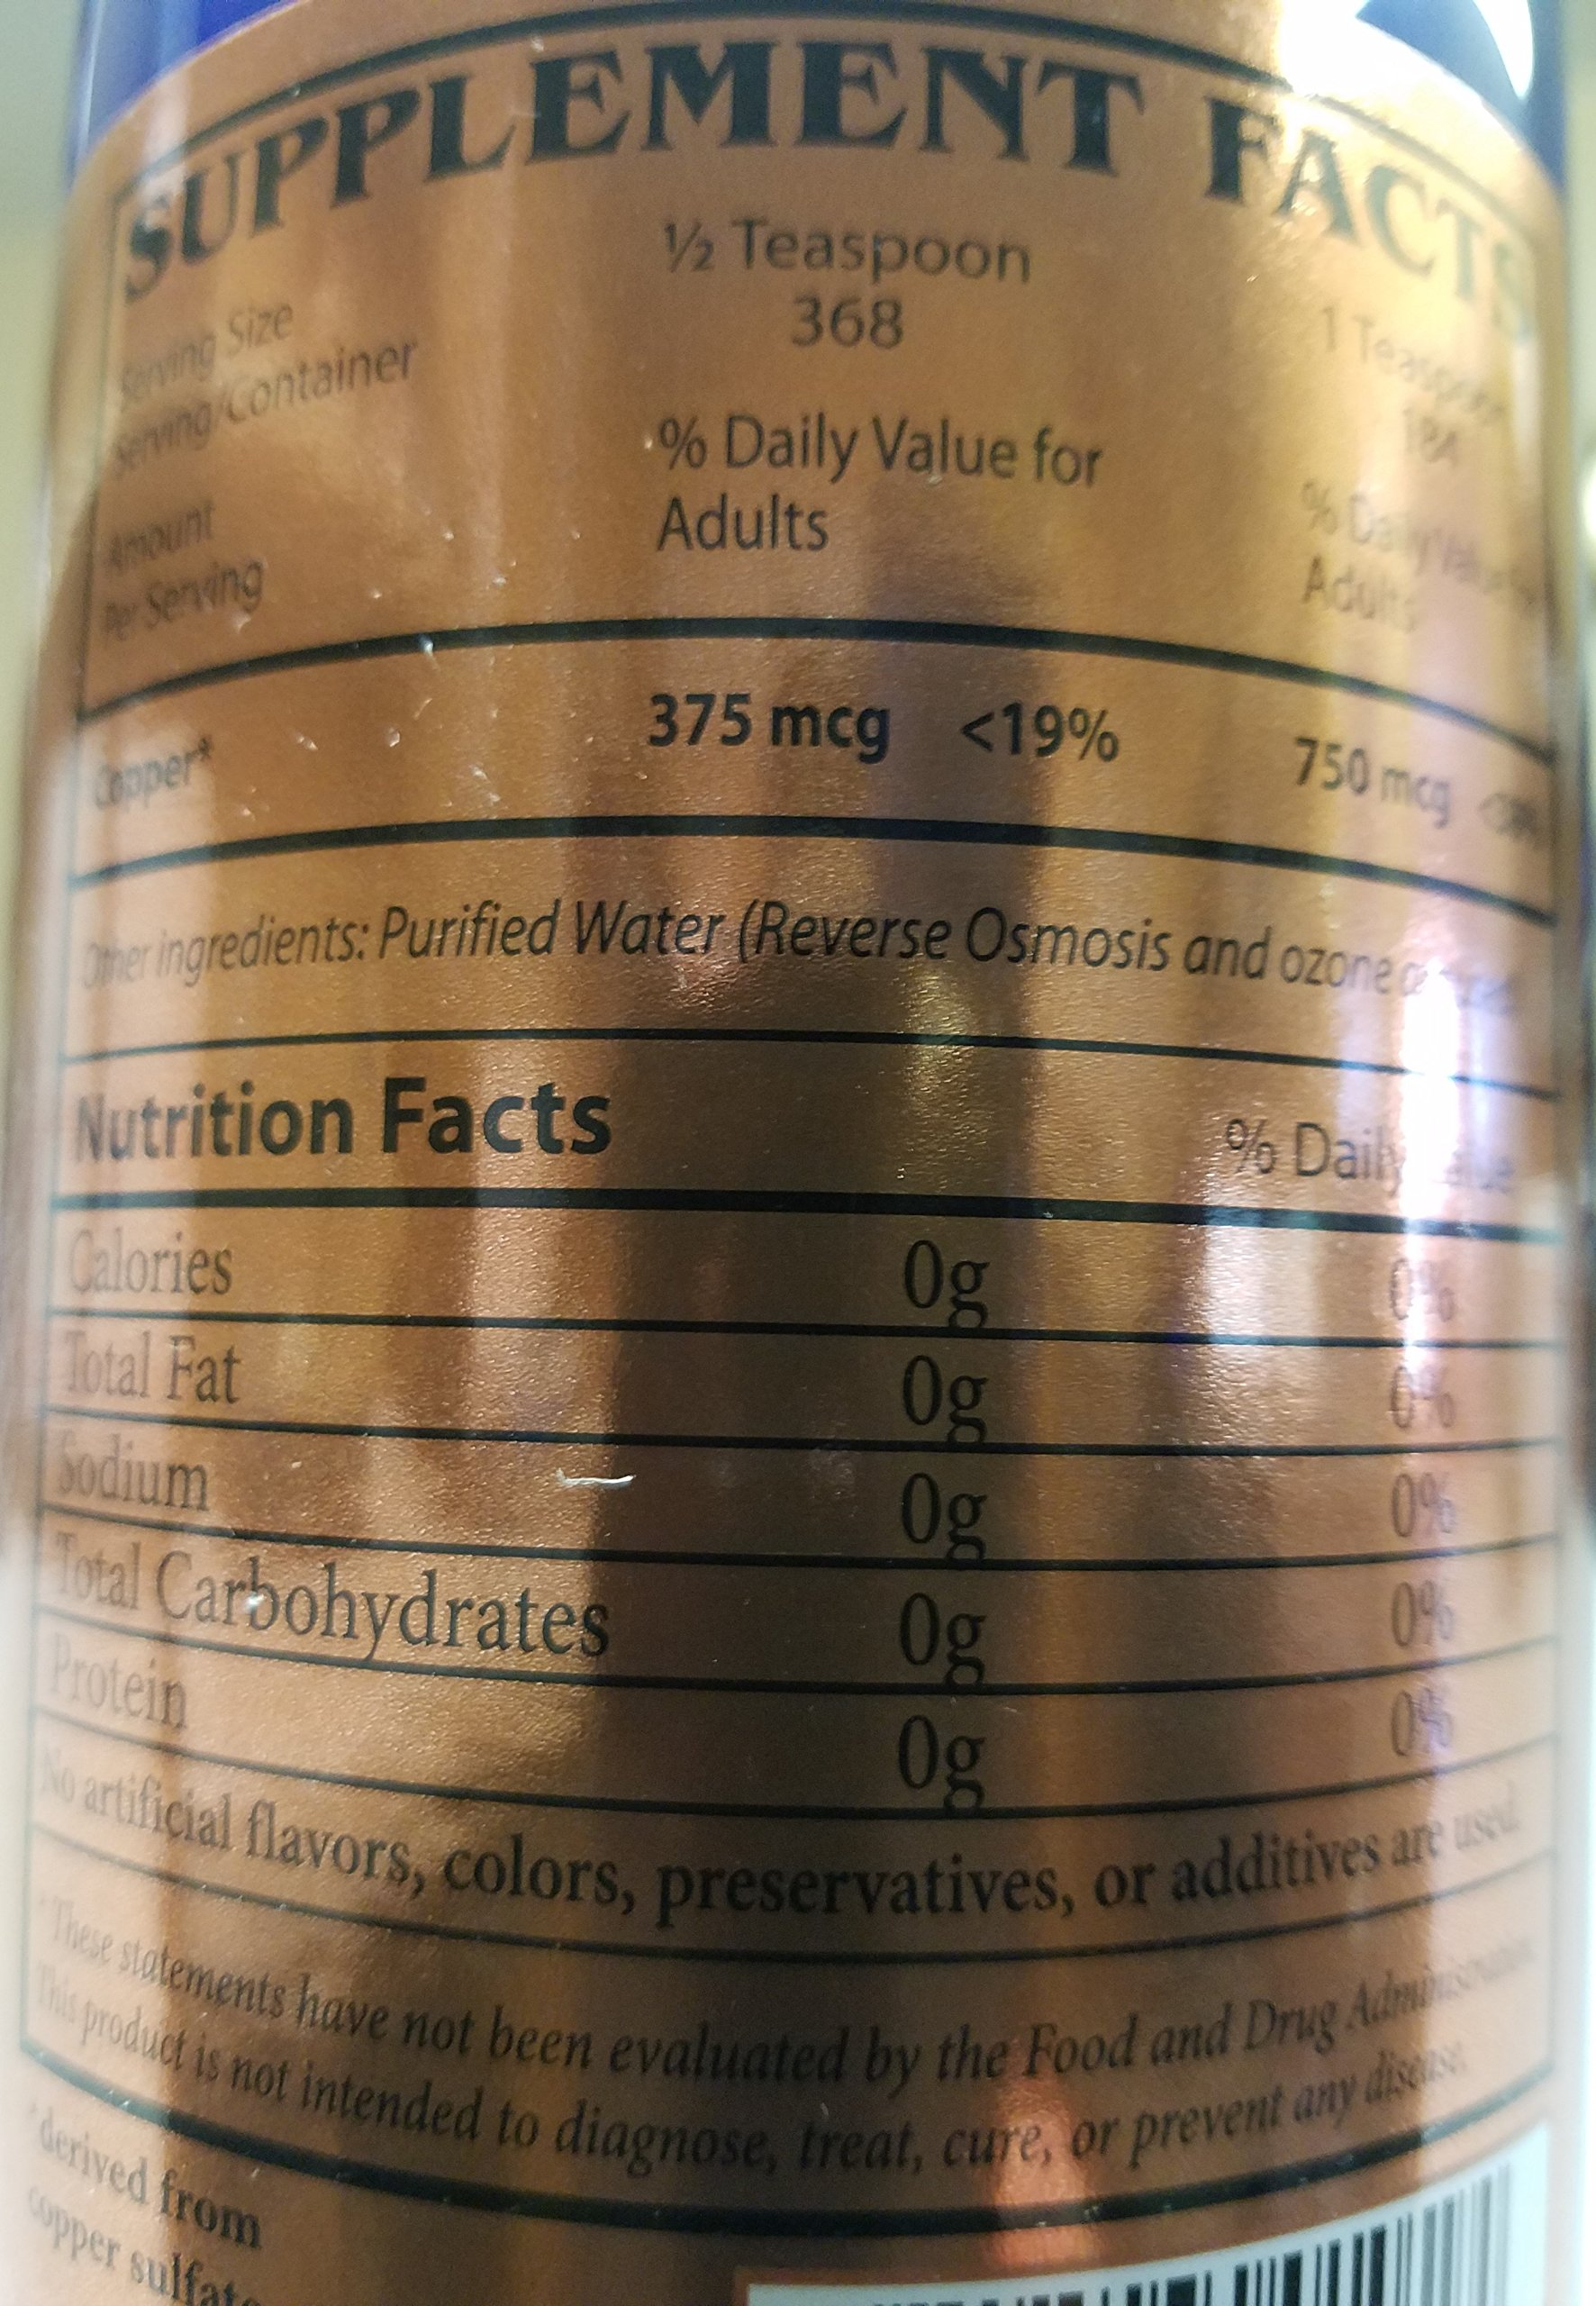 Copper Supplement By Angstrom Minerals Liquid Ionic Copper 150ppm - 32 Oz